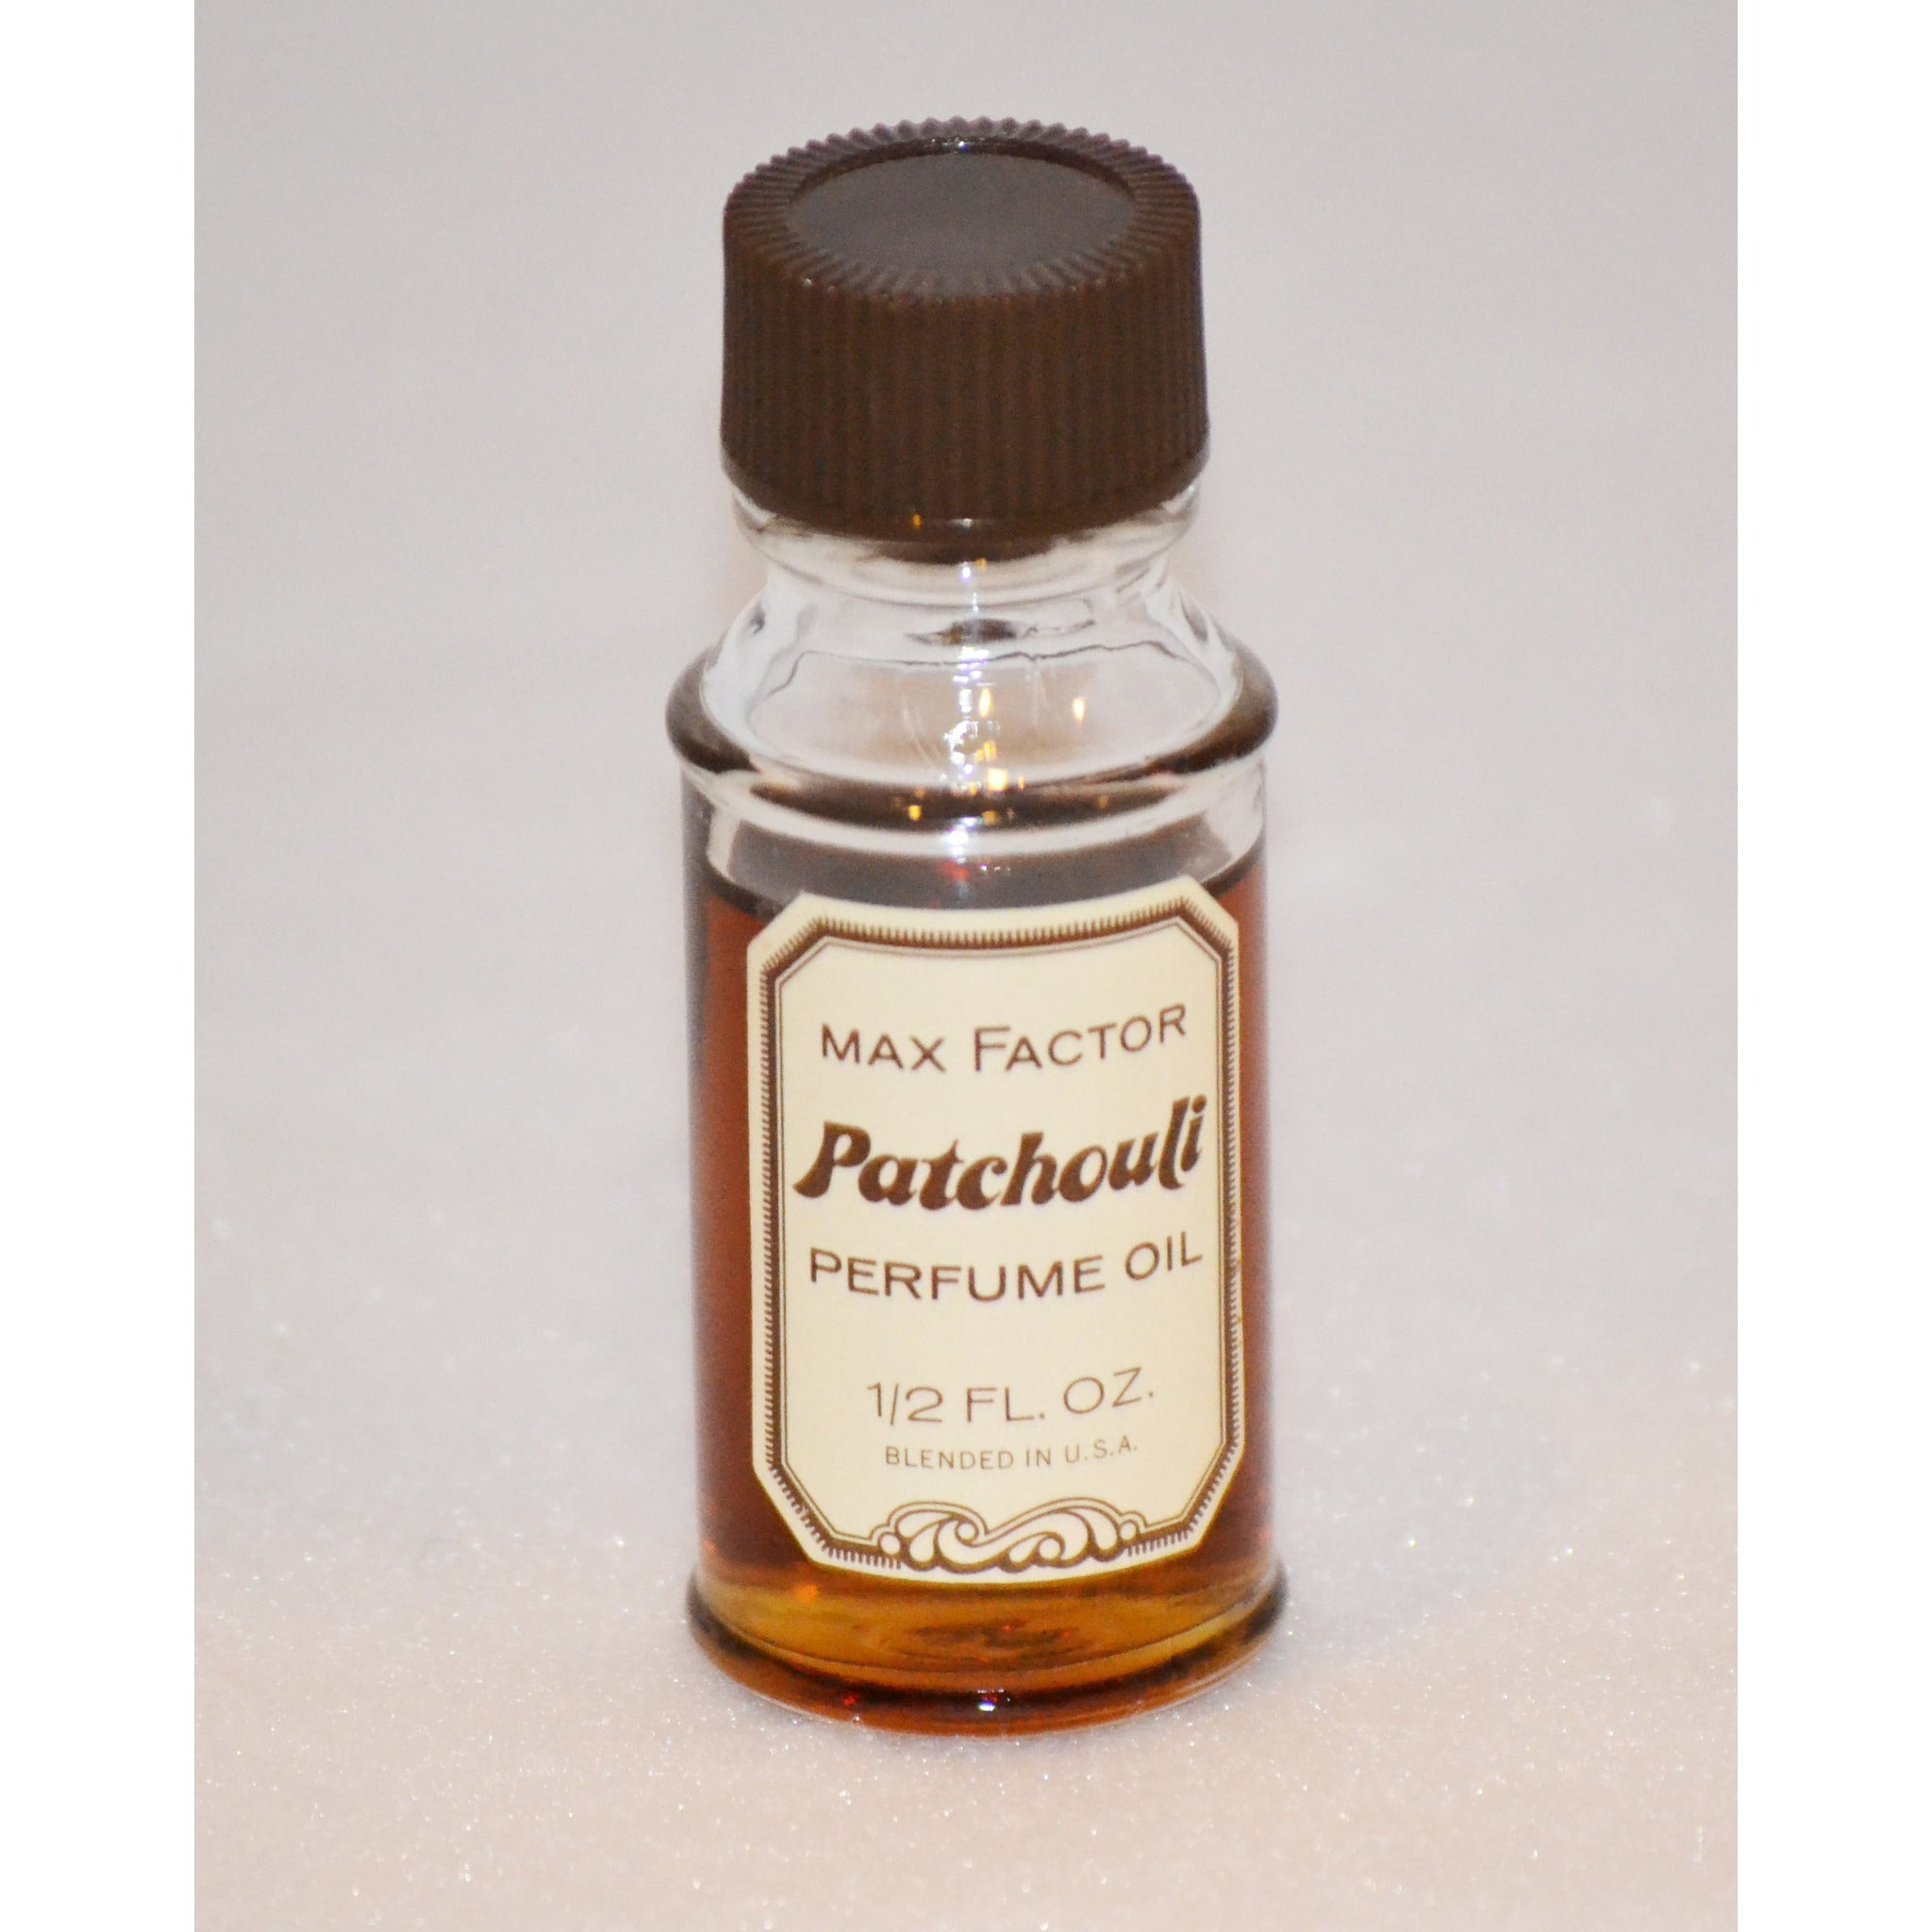 Vintage Patchouli Perfume Oil By Max Factor